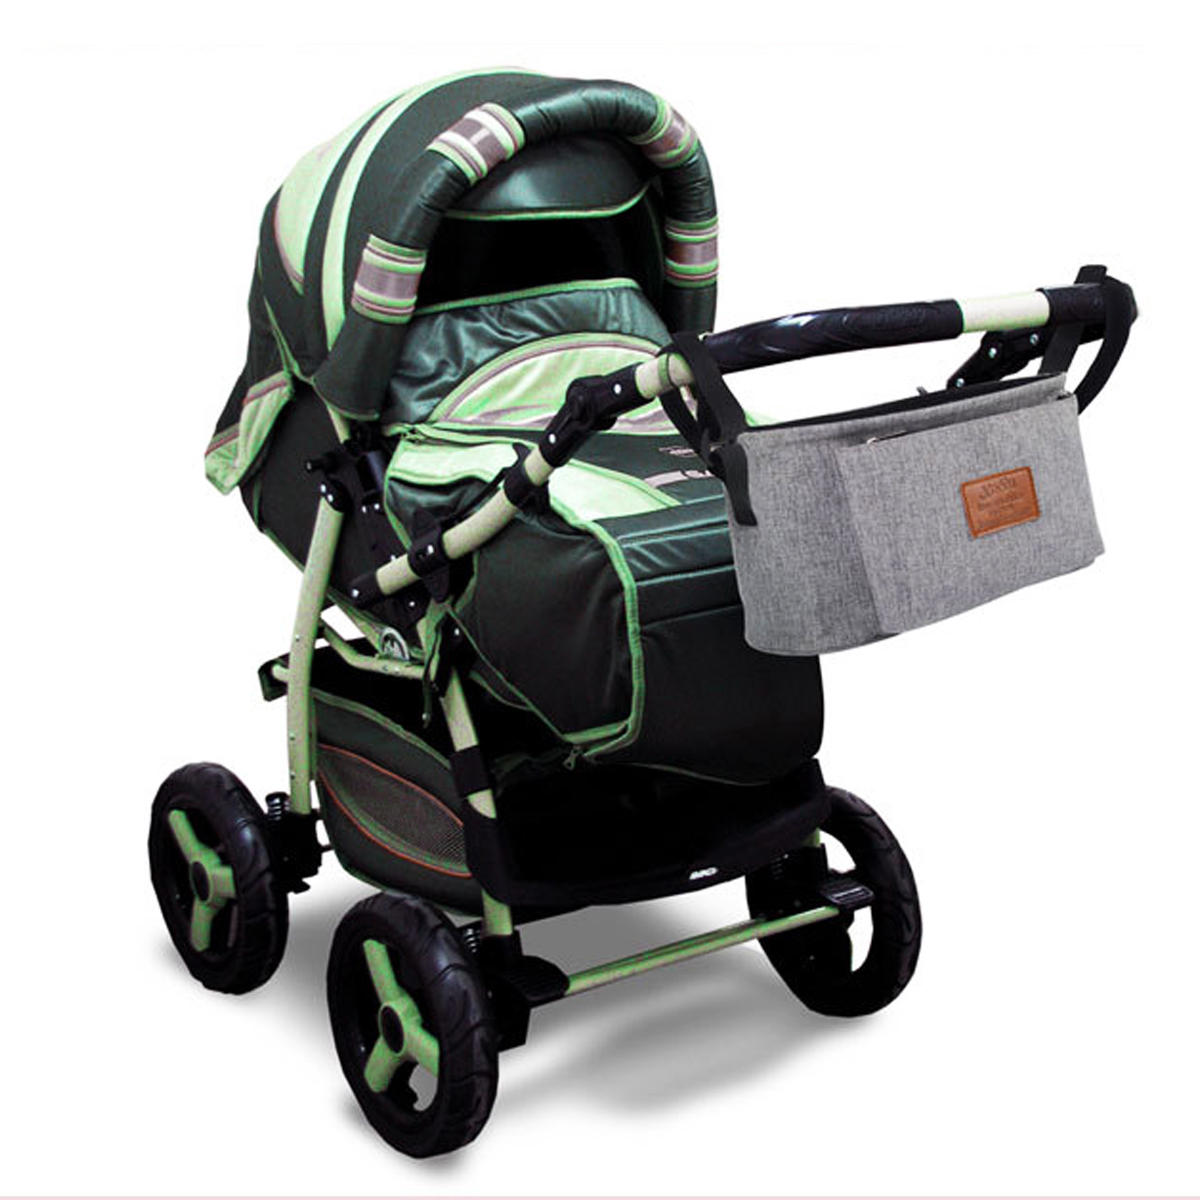 Baby Stroller Sunshade Canopy Cover For Prams Universal Car Seat Buggy Pushchair Cap Sun Hood Stroller Accessories - 3